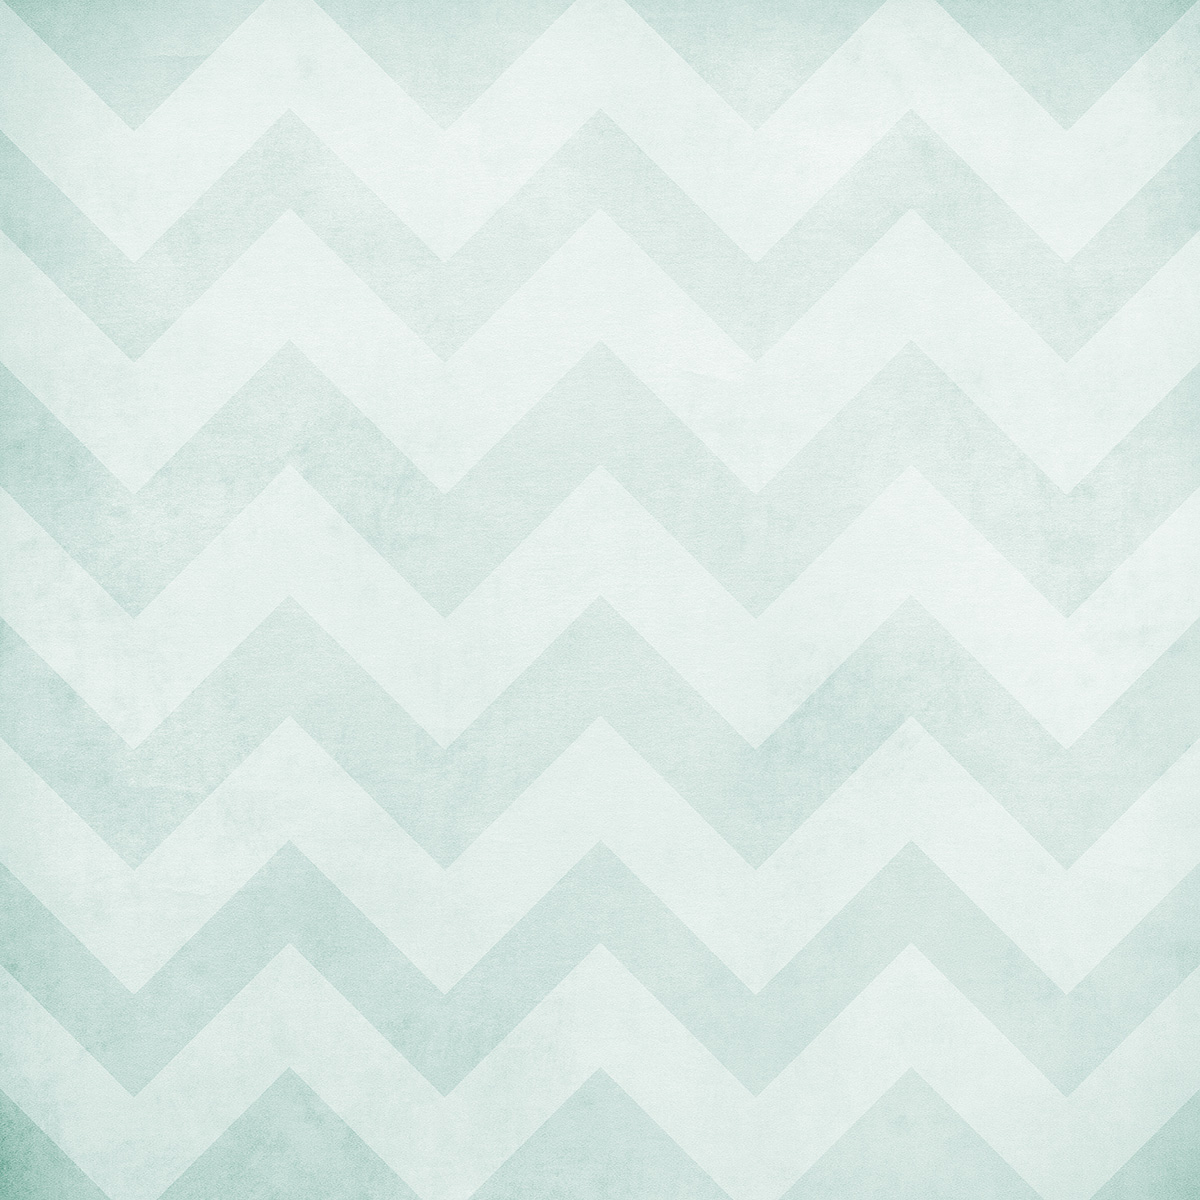 Washed Chevron Art Canvas Backdrop (3.5' x 3.5') - Light Turquoise